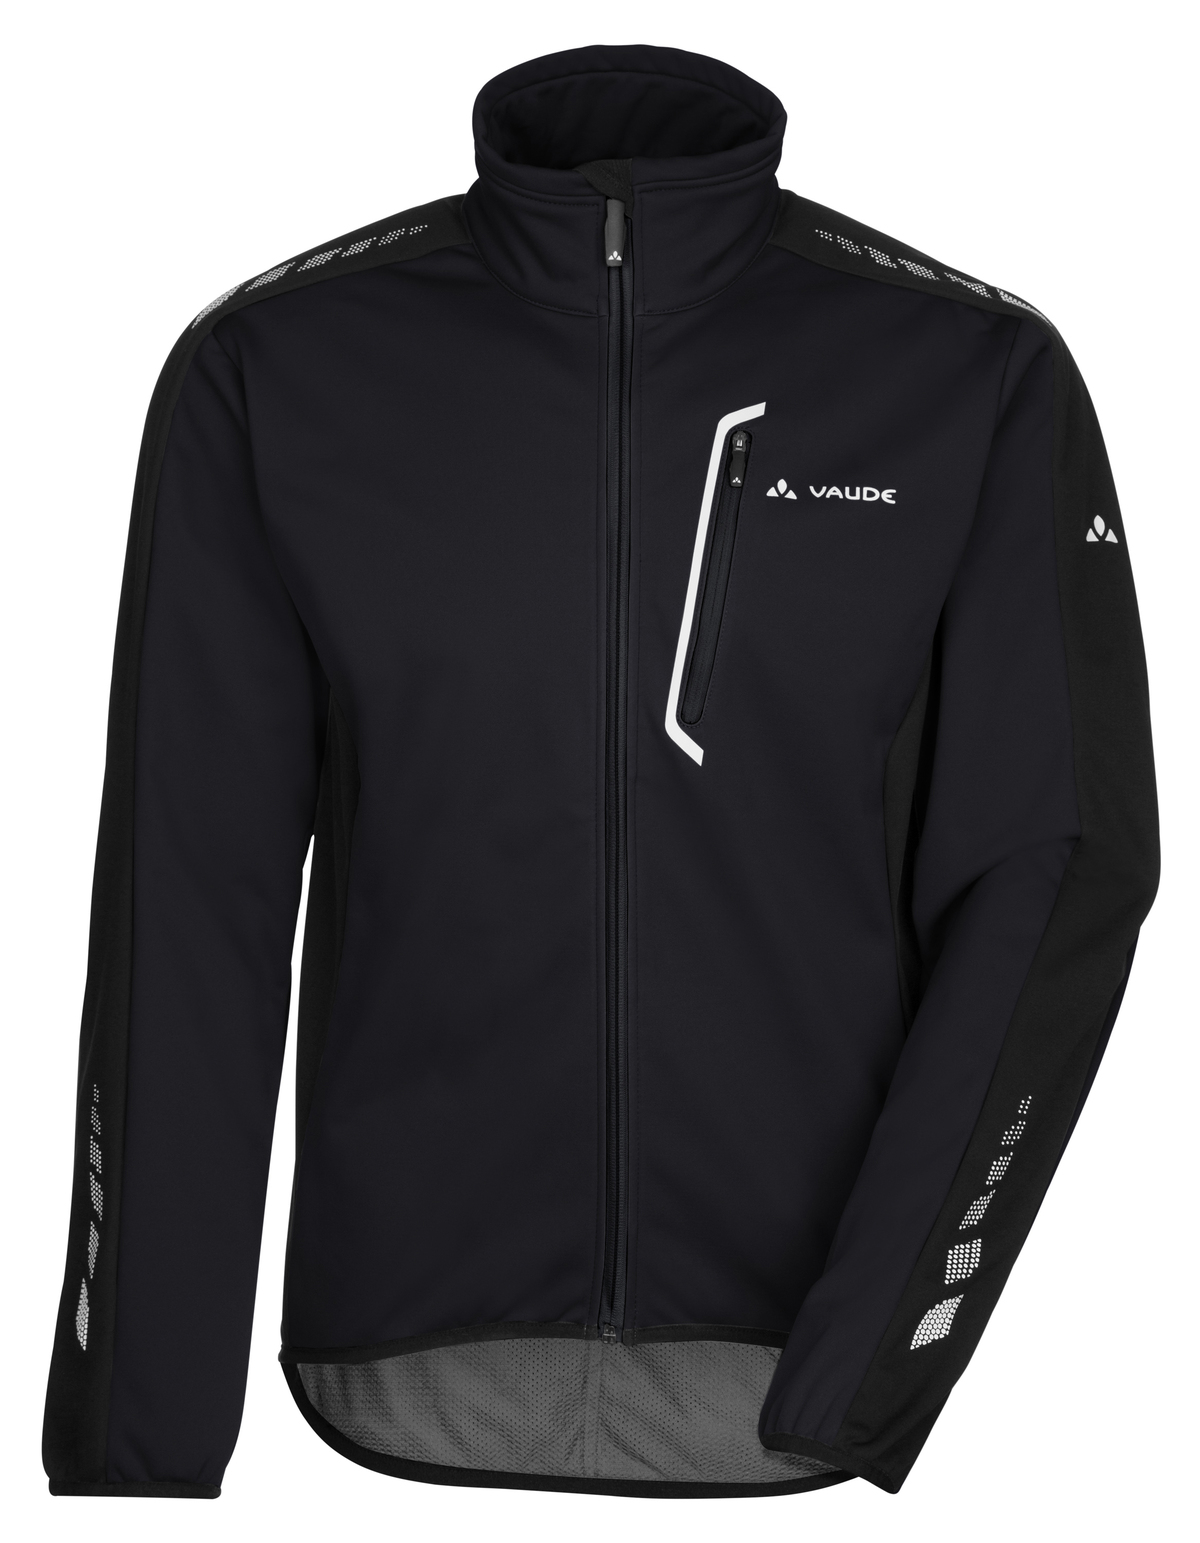 VAUDE Men´s Posta Softshell Jacket IV black Größe L - schneider-sports